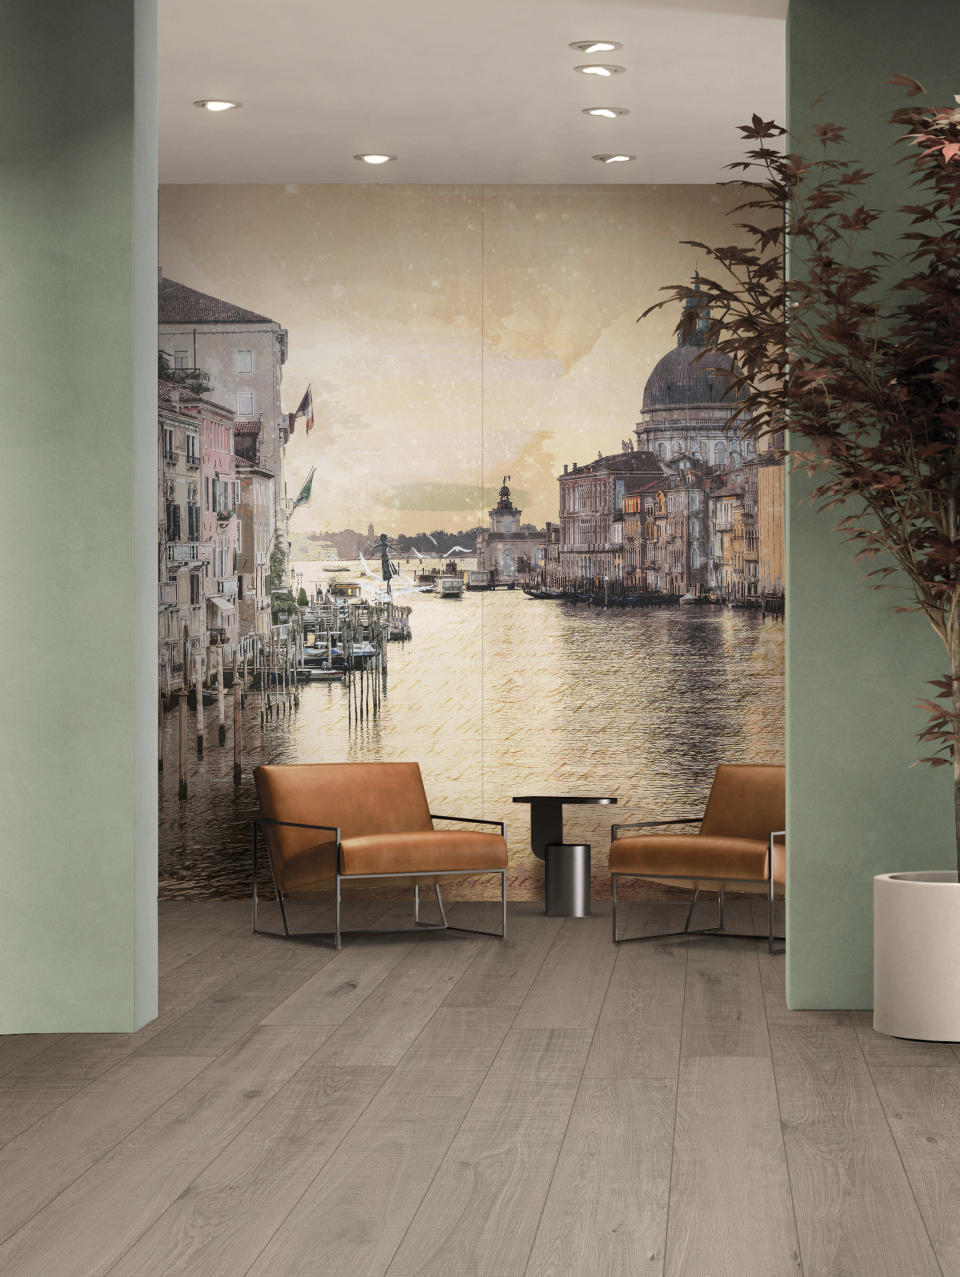 """This undated photo provided by Ceramics of Italy shows some of Italy based ABK's """"ceramic wallpaper."""" ABK offers the Nuovi Mondi capsule collection of large format ceramic tiles digitally printed, with painterly landscapes and whimsical illusory elements like tightrope walkers, bicyclists and playful children. Termed """"ceramic wallpaper,"""" the scenes include Rome, Venice, and Milan. (Ceramics of Italy via AP)"""